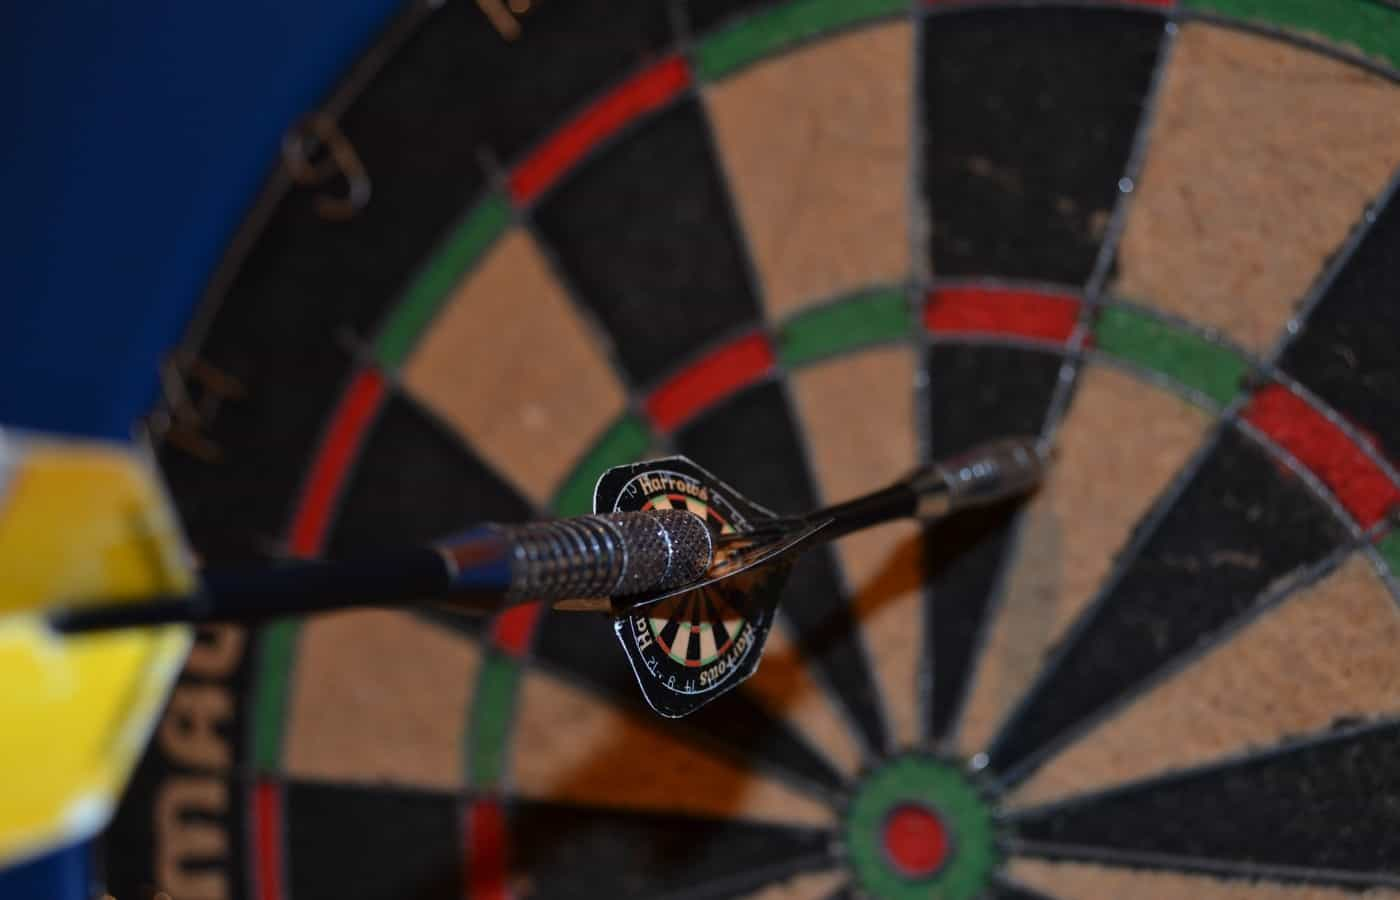 does a dart count if it falls out